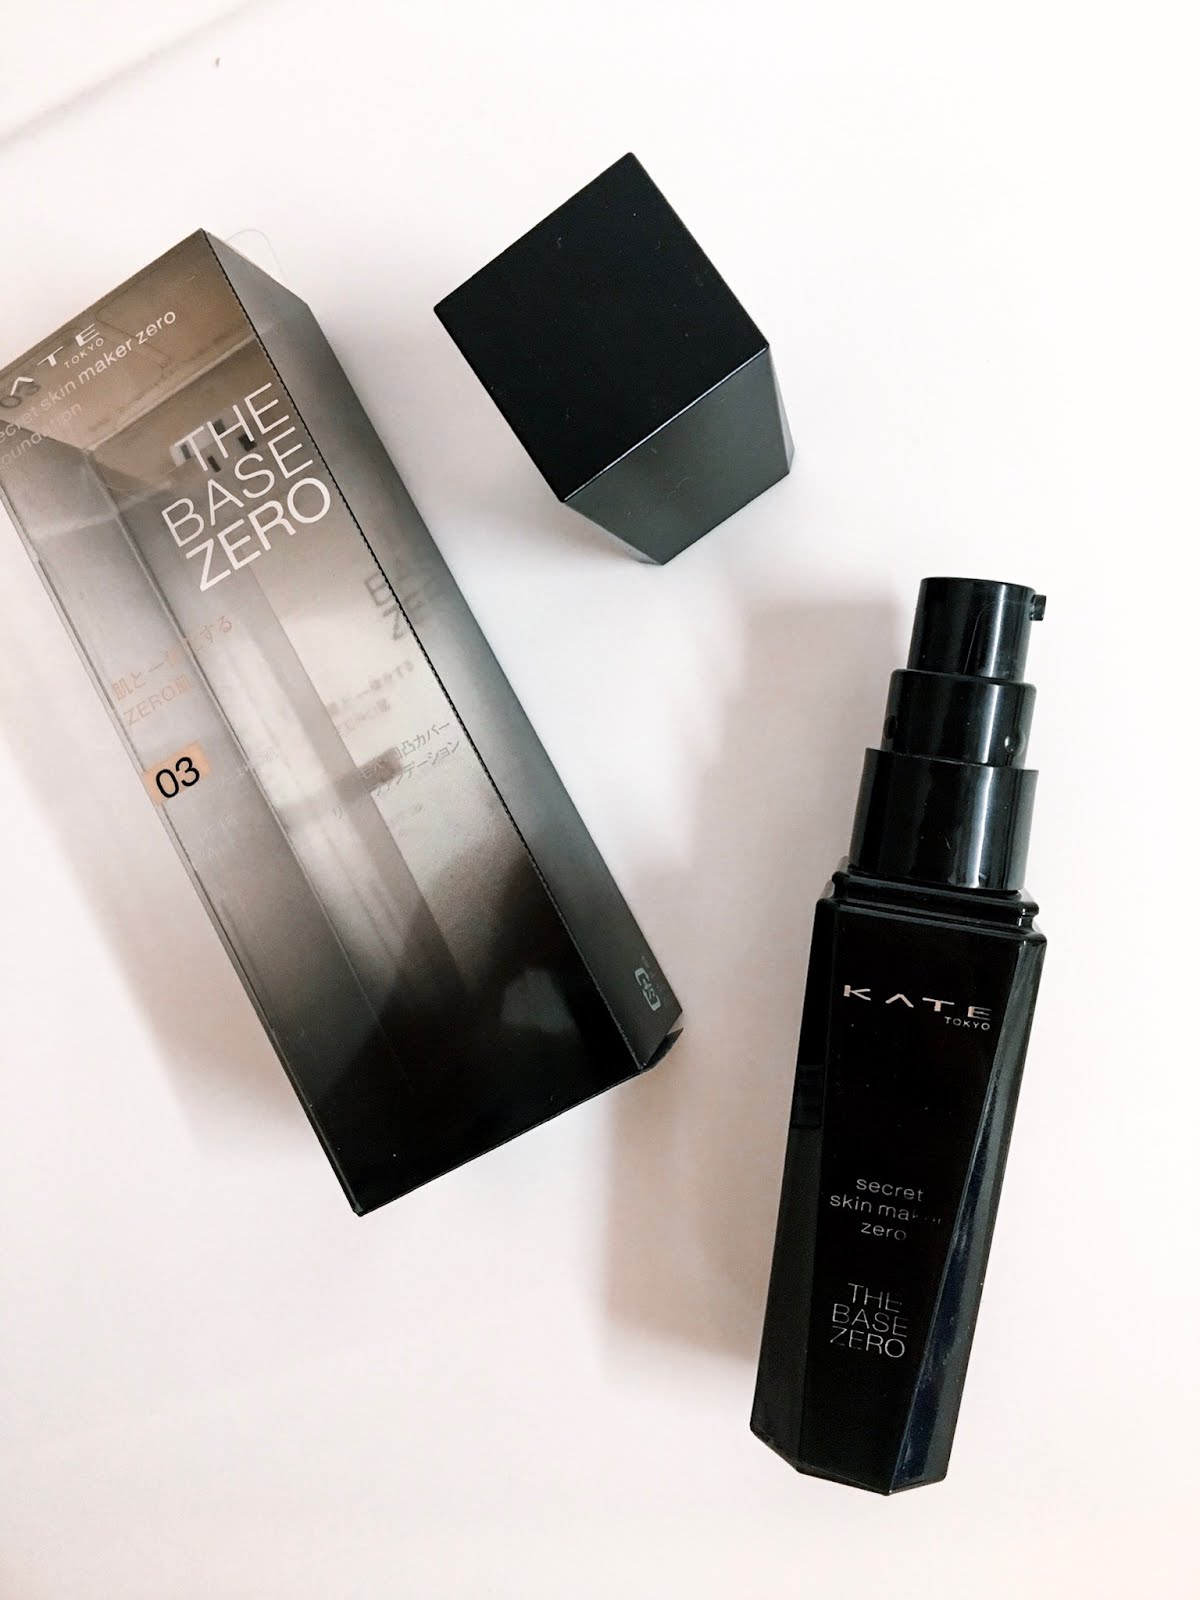 KATE Tokyo Secret Skin Maker Zero Liquid Foundation Review